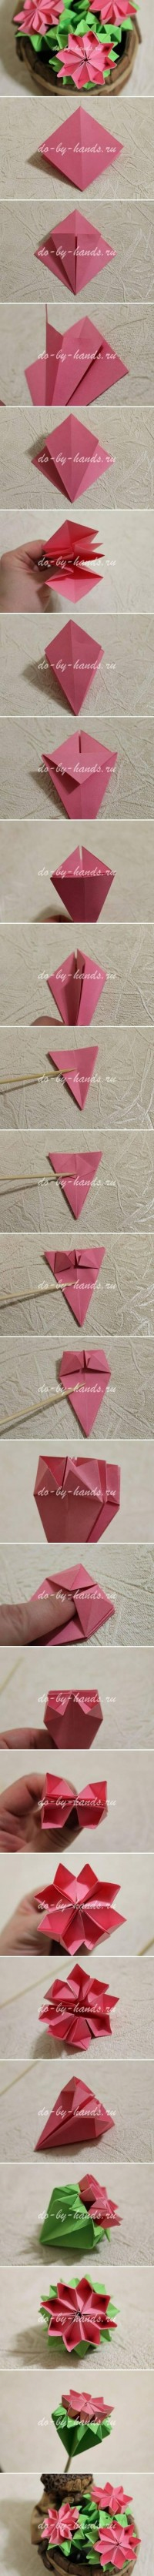 Origami Modular Primrose Flower | Origami Instruction